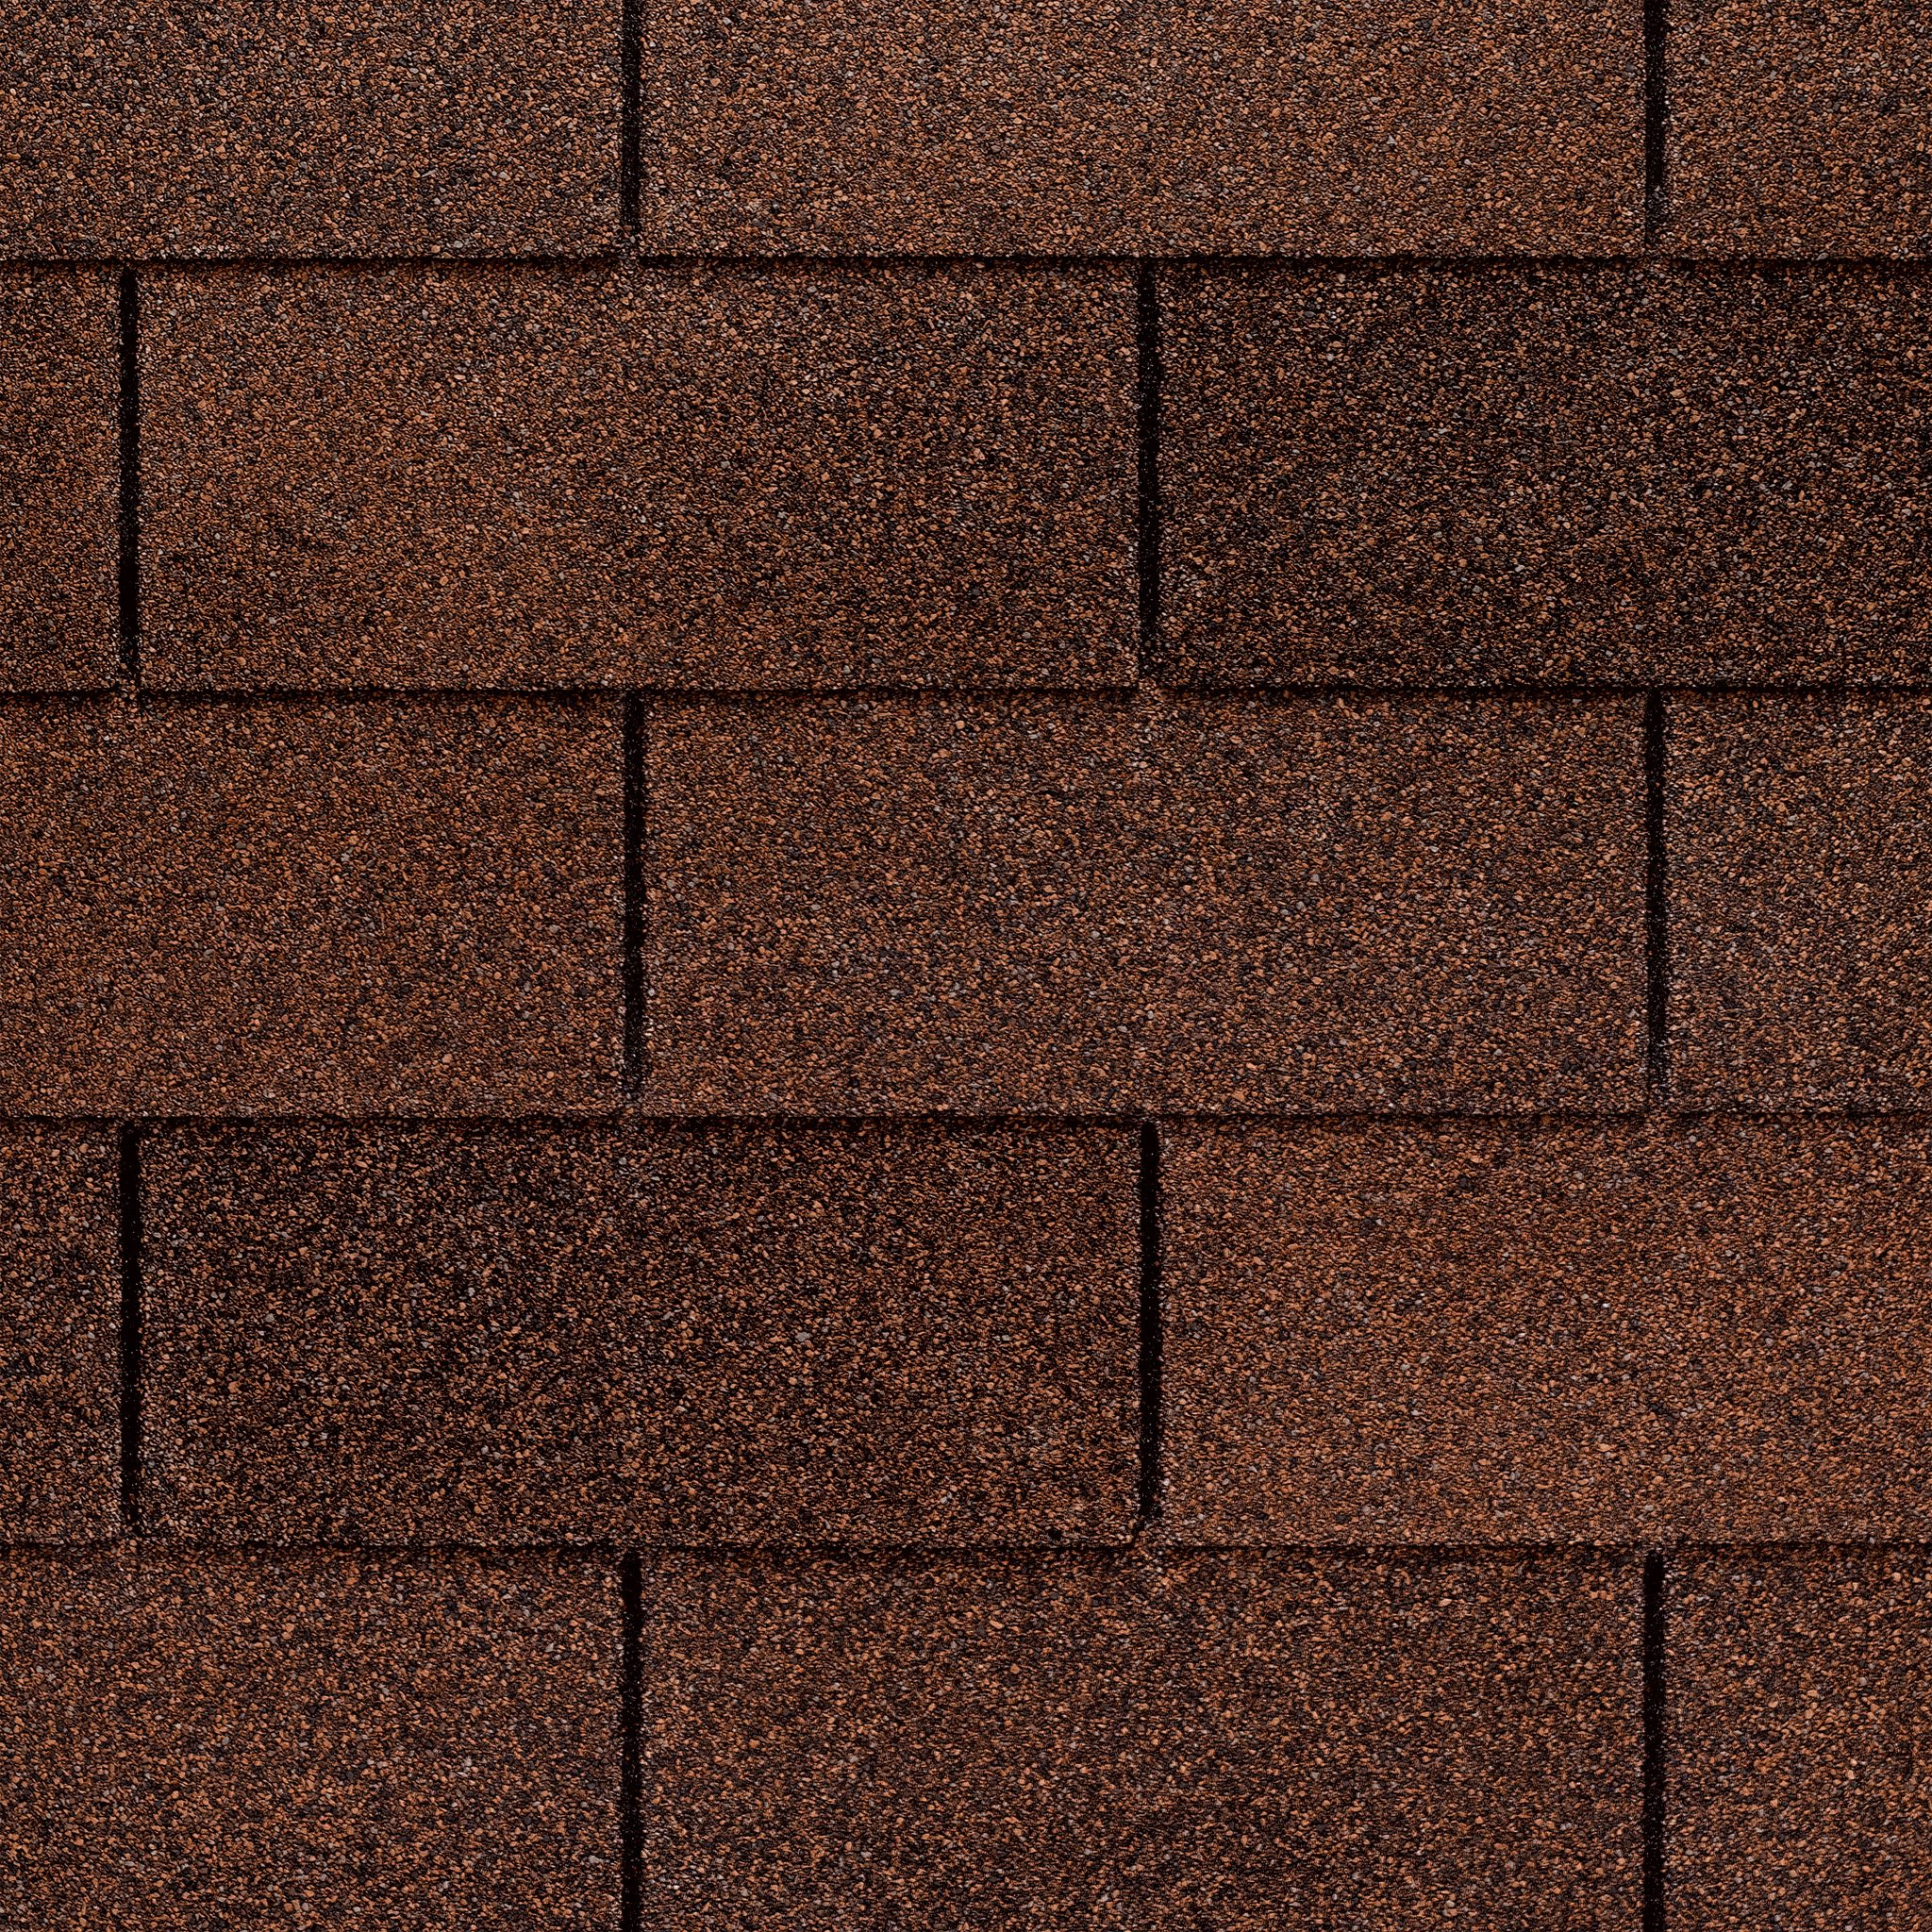 Close up photo of GAF's Royal Sovereign Autumn Brown shingle swatches